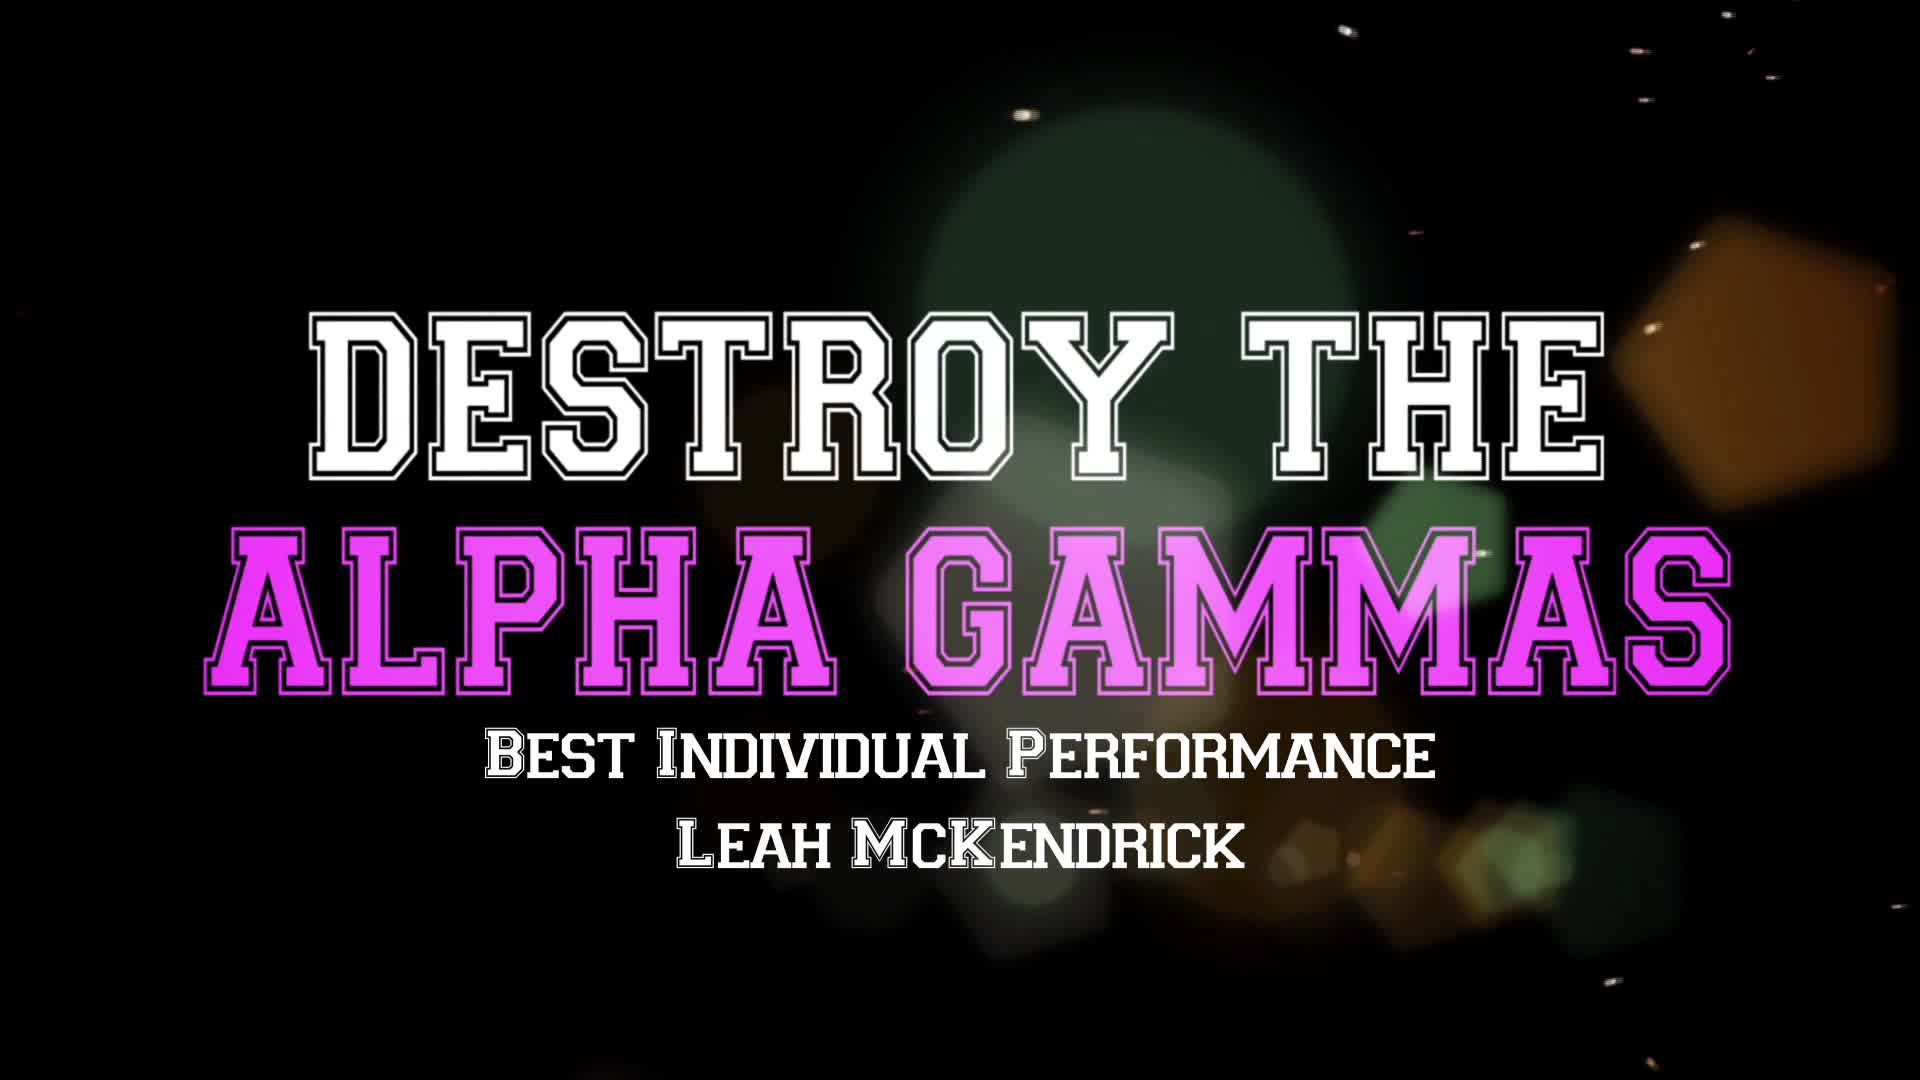 Honoree - Destroy the Alpha Gammas